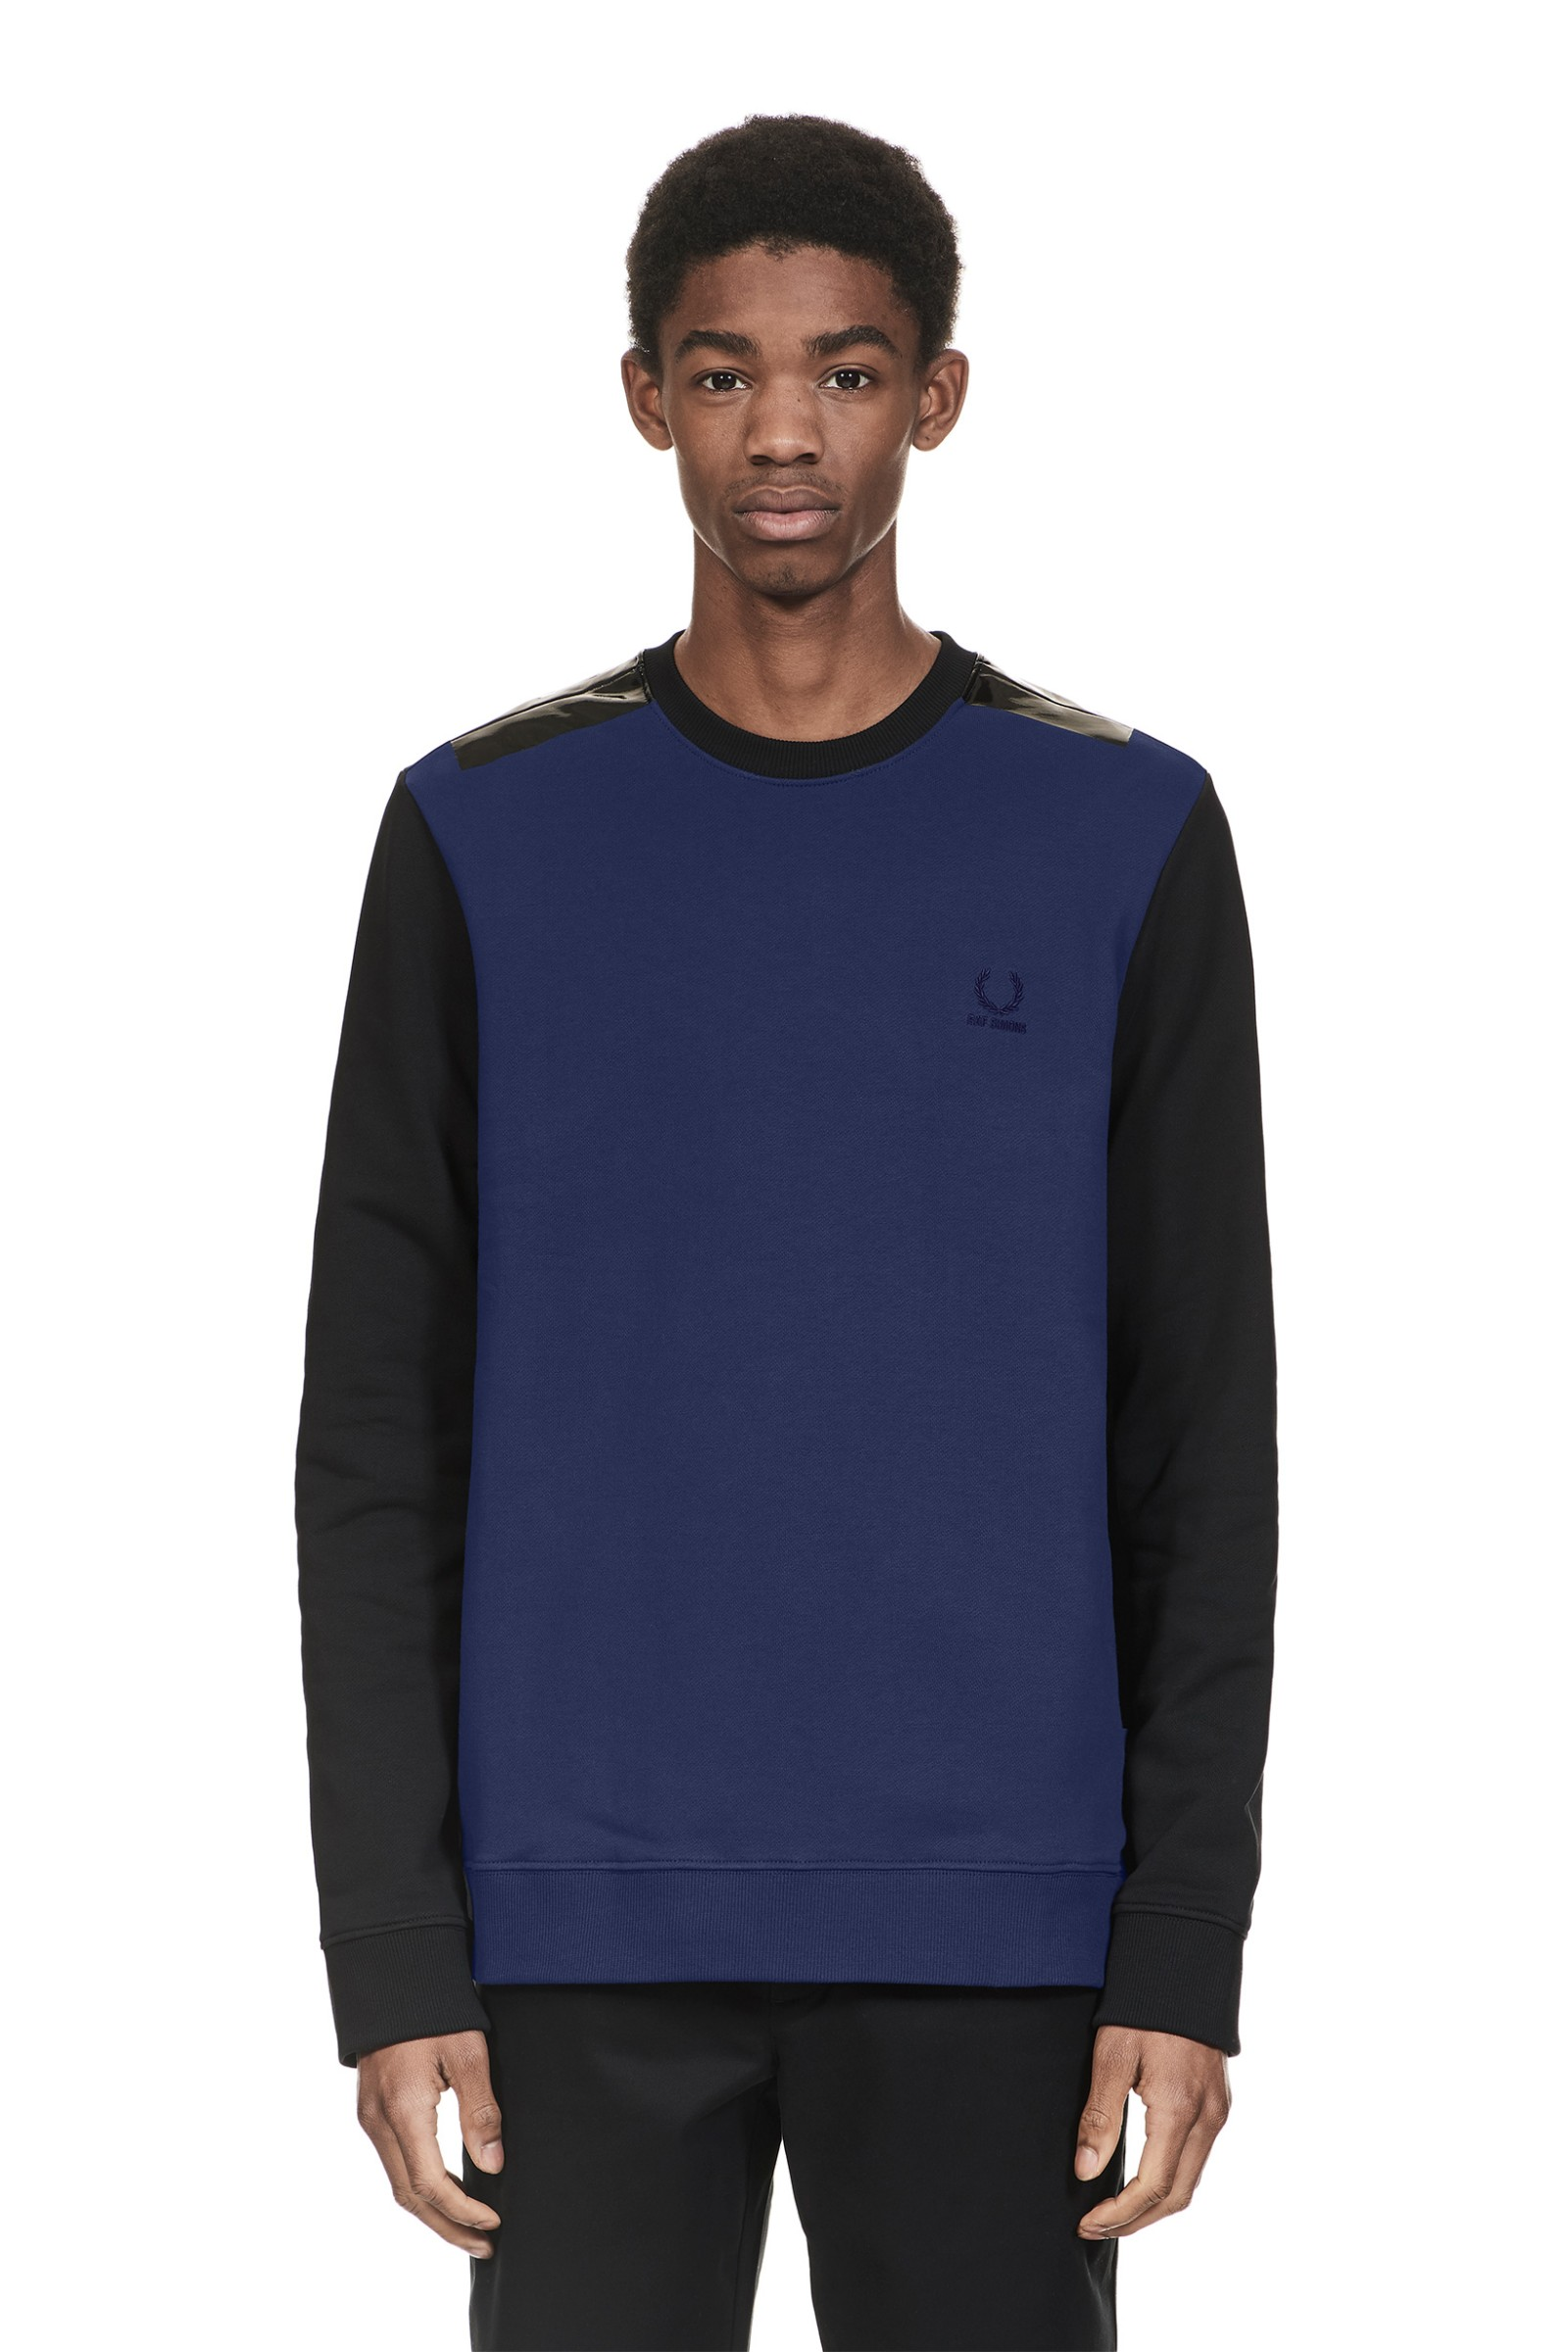 Fred Perry Raf Simons Taped Detail Sweatshirt